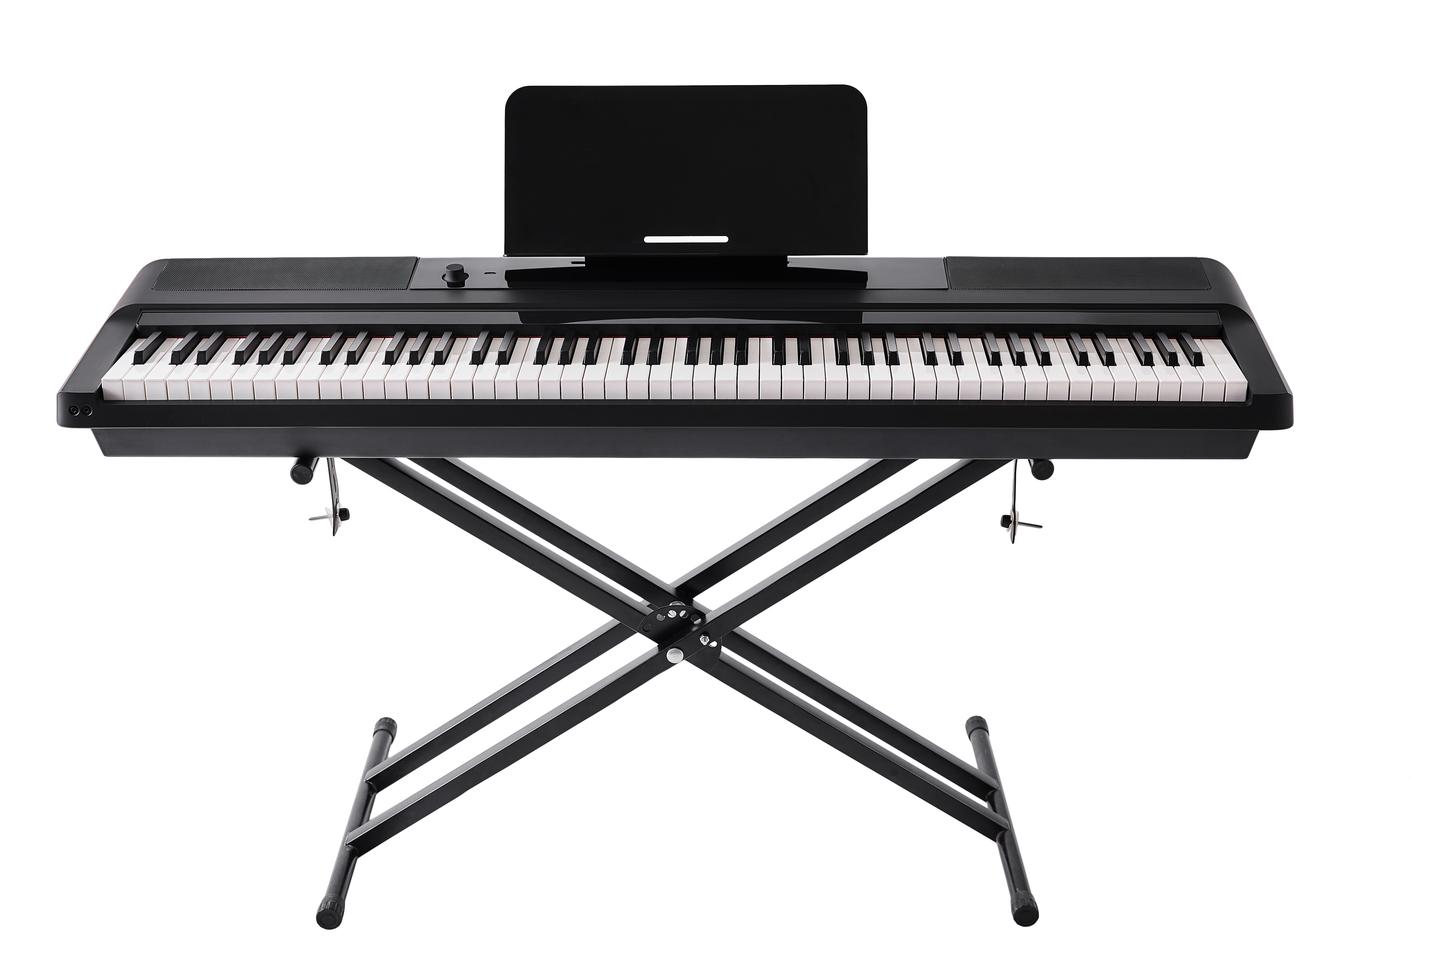 The One Keyboard Pro Essential smart learning piano features 88 hammer-weighted keys, built-in speakers and 128 note polyphony